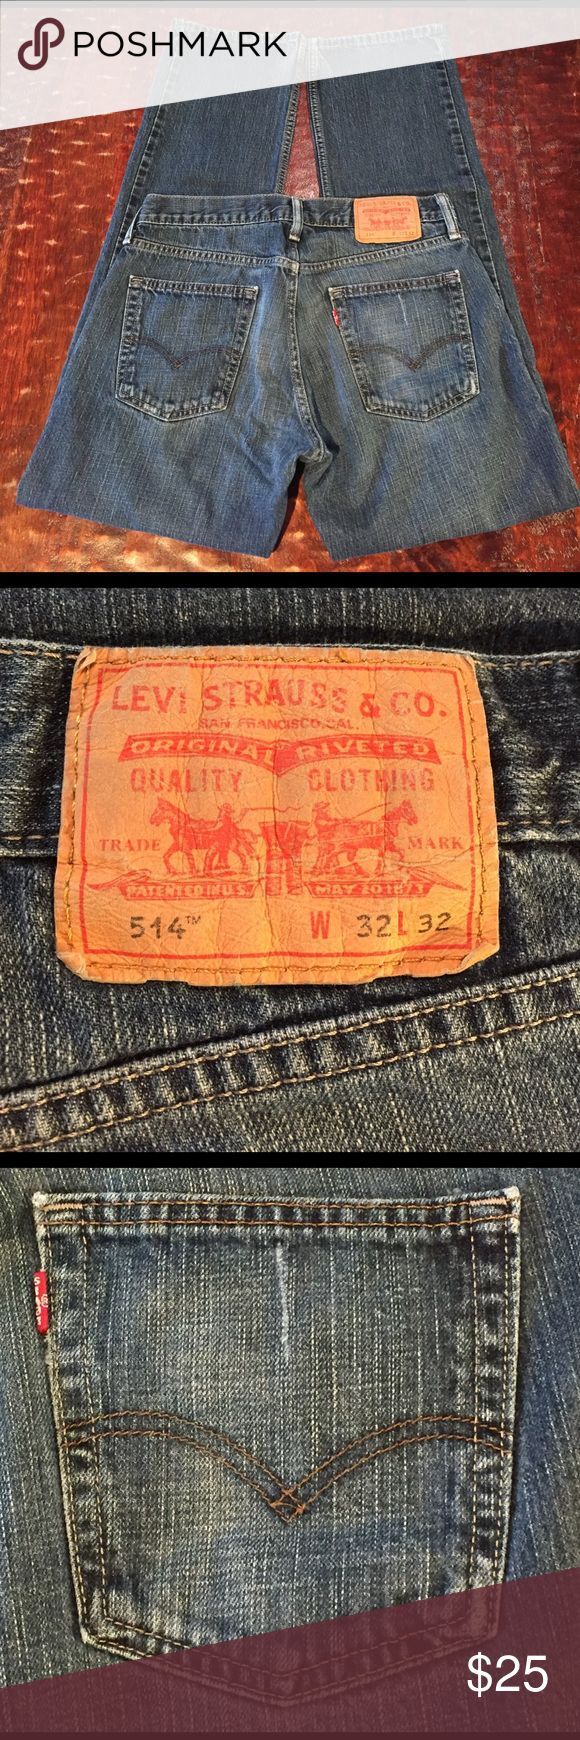 Levis Men's 514 Size 32/32 Men's Levis 514 Size 32/32. Jeans are in excellent. Condition with no signs of wear. Comes from a Smoke Free/Pet Friendly home. Offers always welcome. Levi's Jeans Bootcut